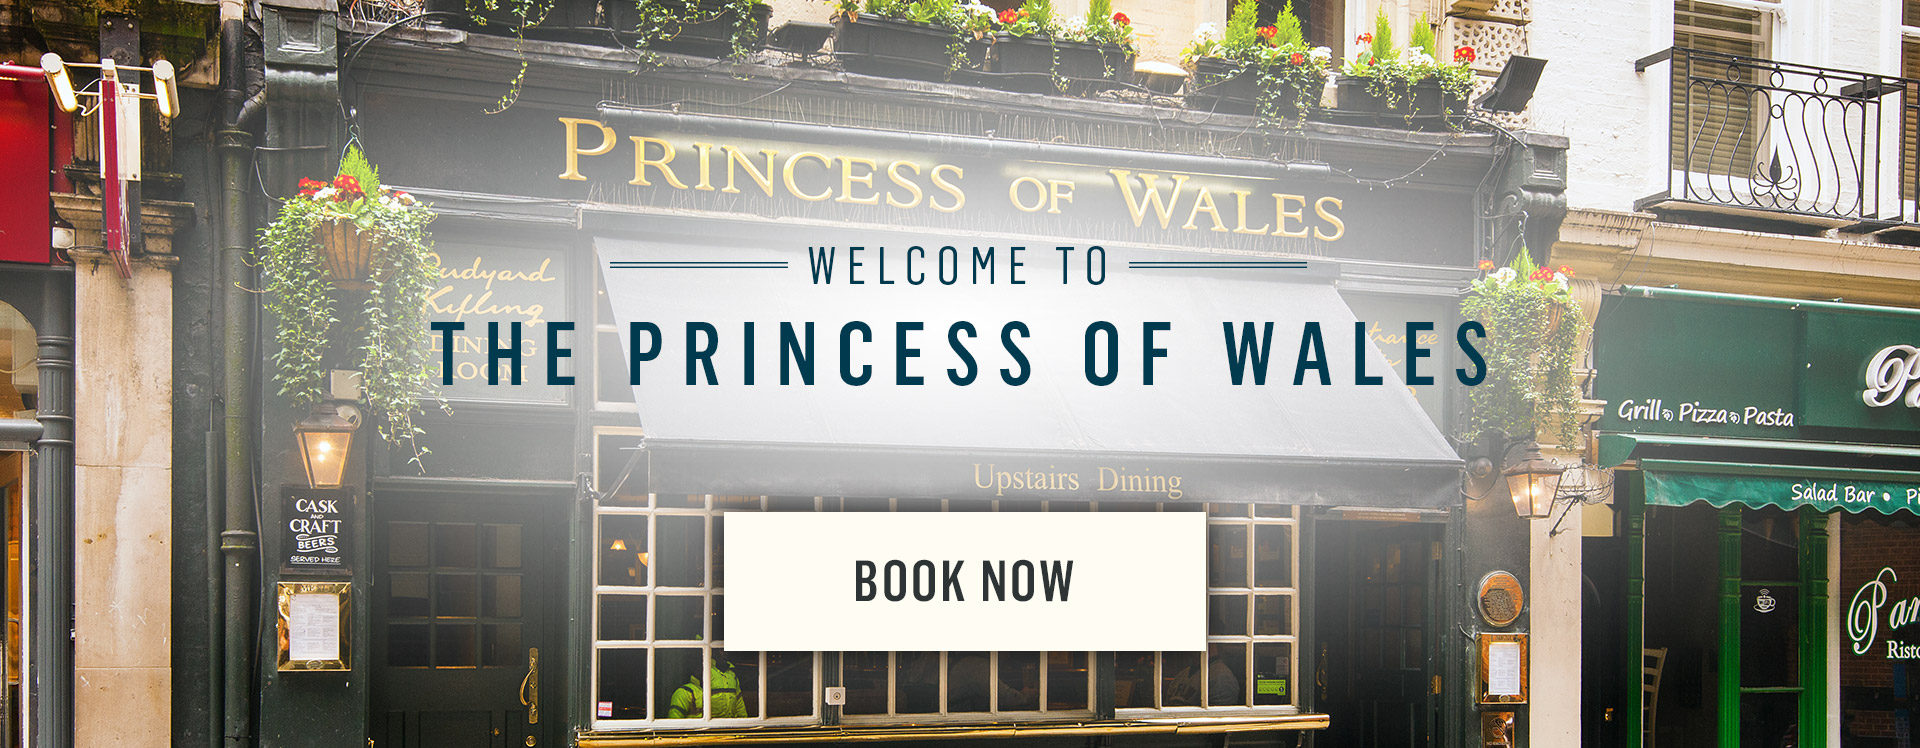 Welcome to The Princess Of Wales - Book Now